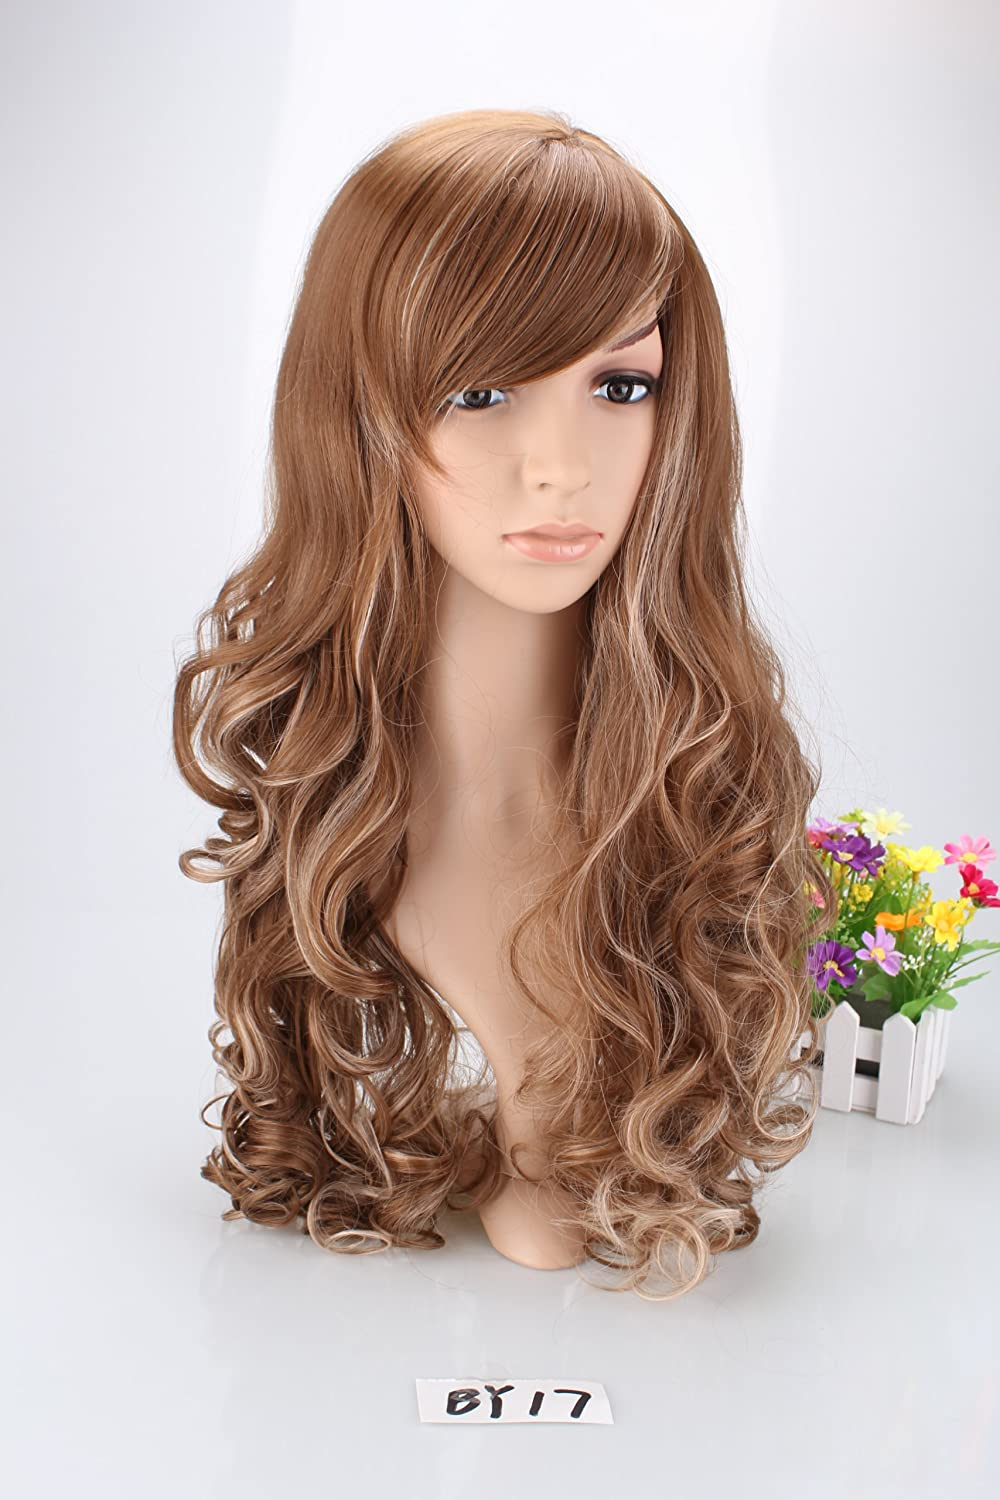 Amazon liz wig long wavy cosplay wig 26 ltown w blonde amazon liz wig long wavy cosplay wig 26 ltown w blonde highlights beauty urmus